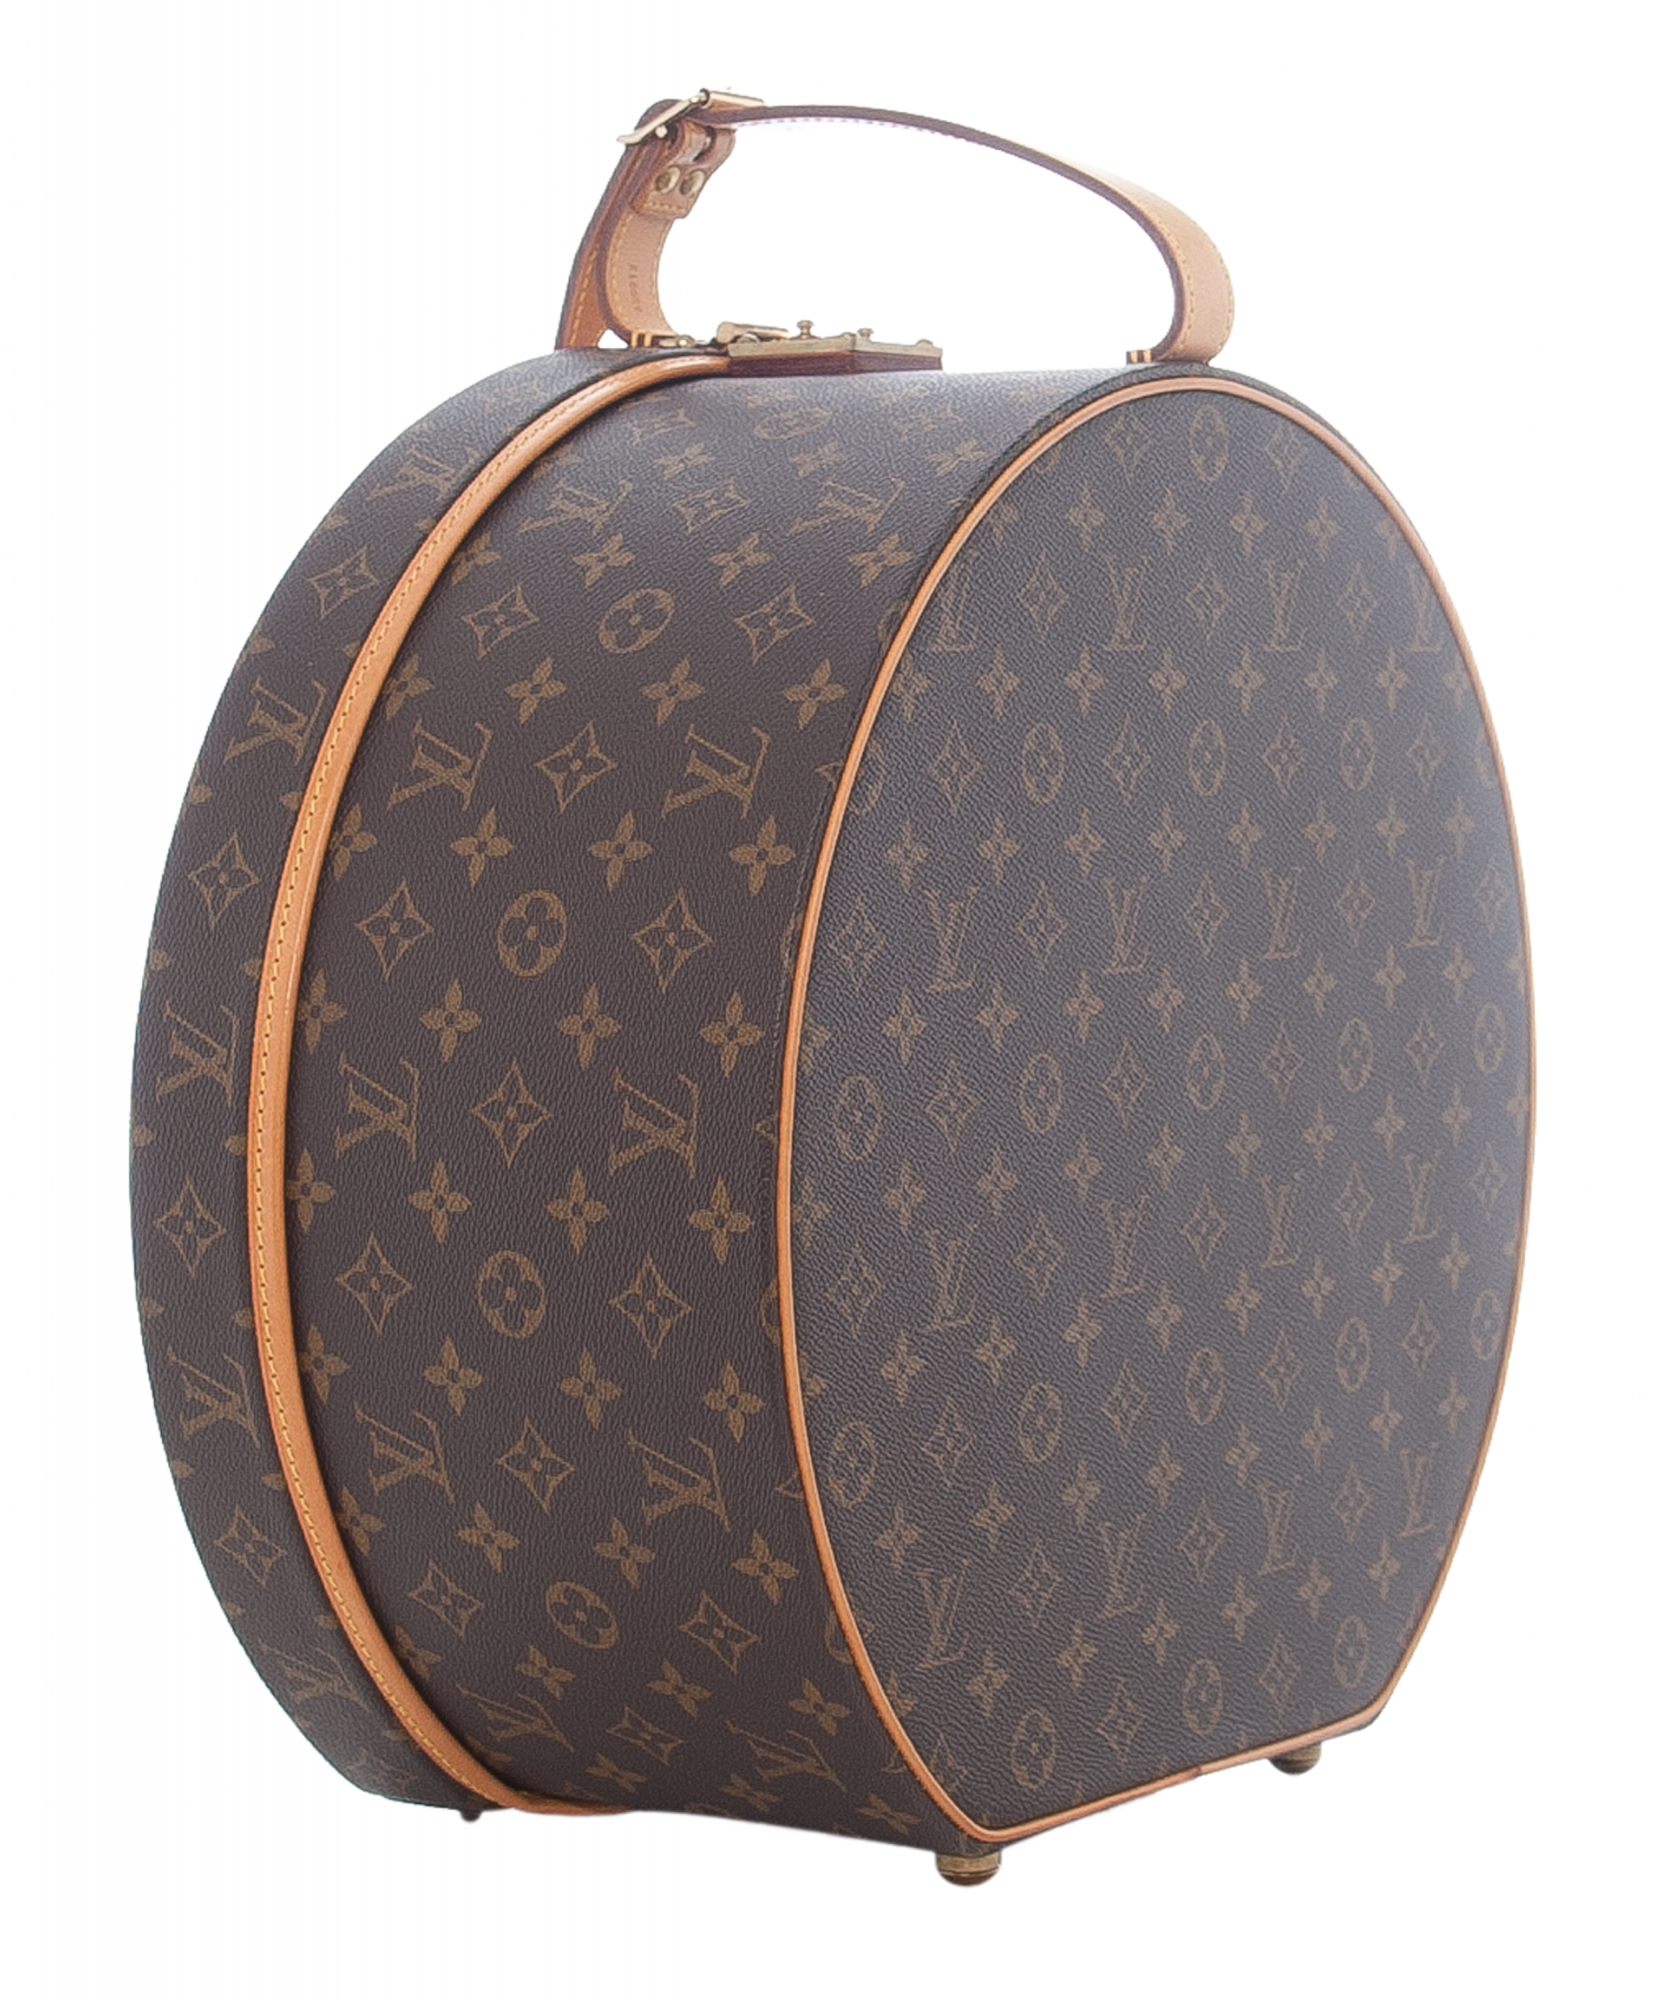 b1cb2a16f6e5 ... Louis Vuitton Hat Box in Monogram Canvas. Tap to expand